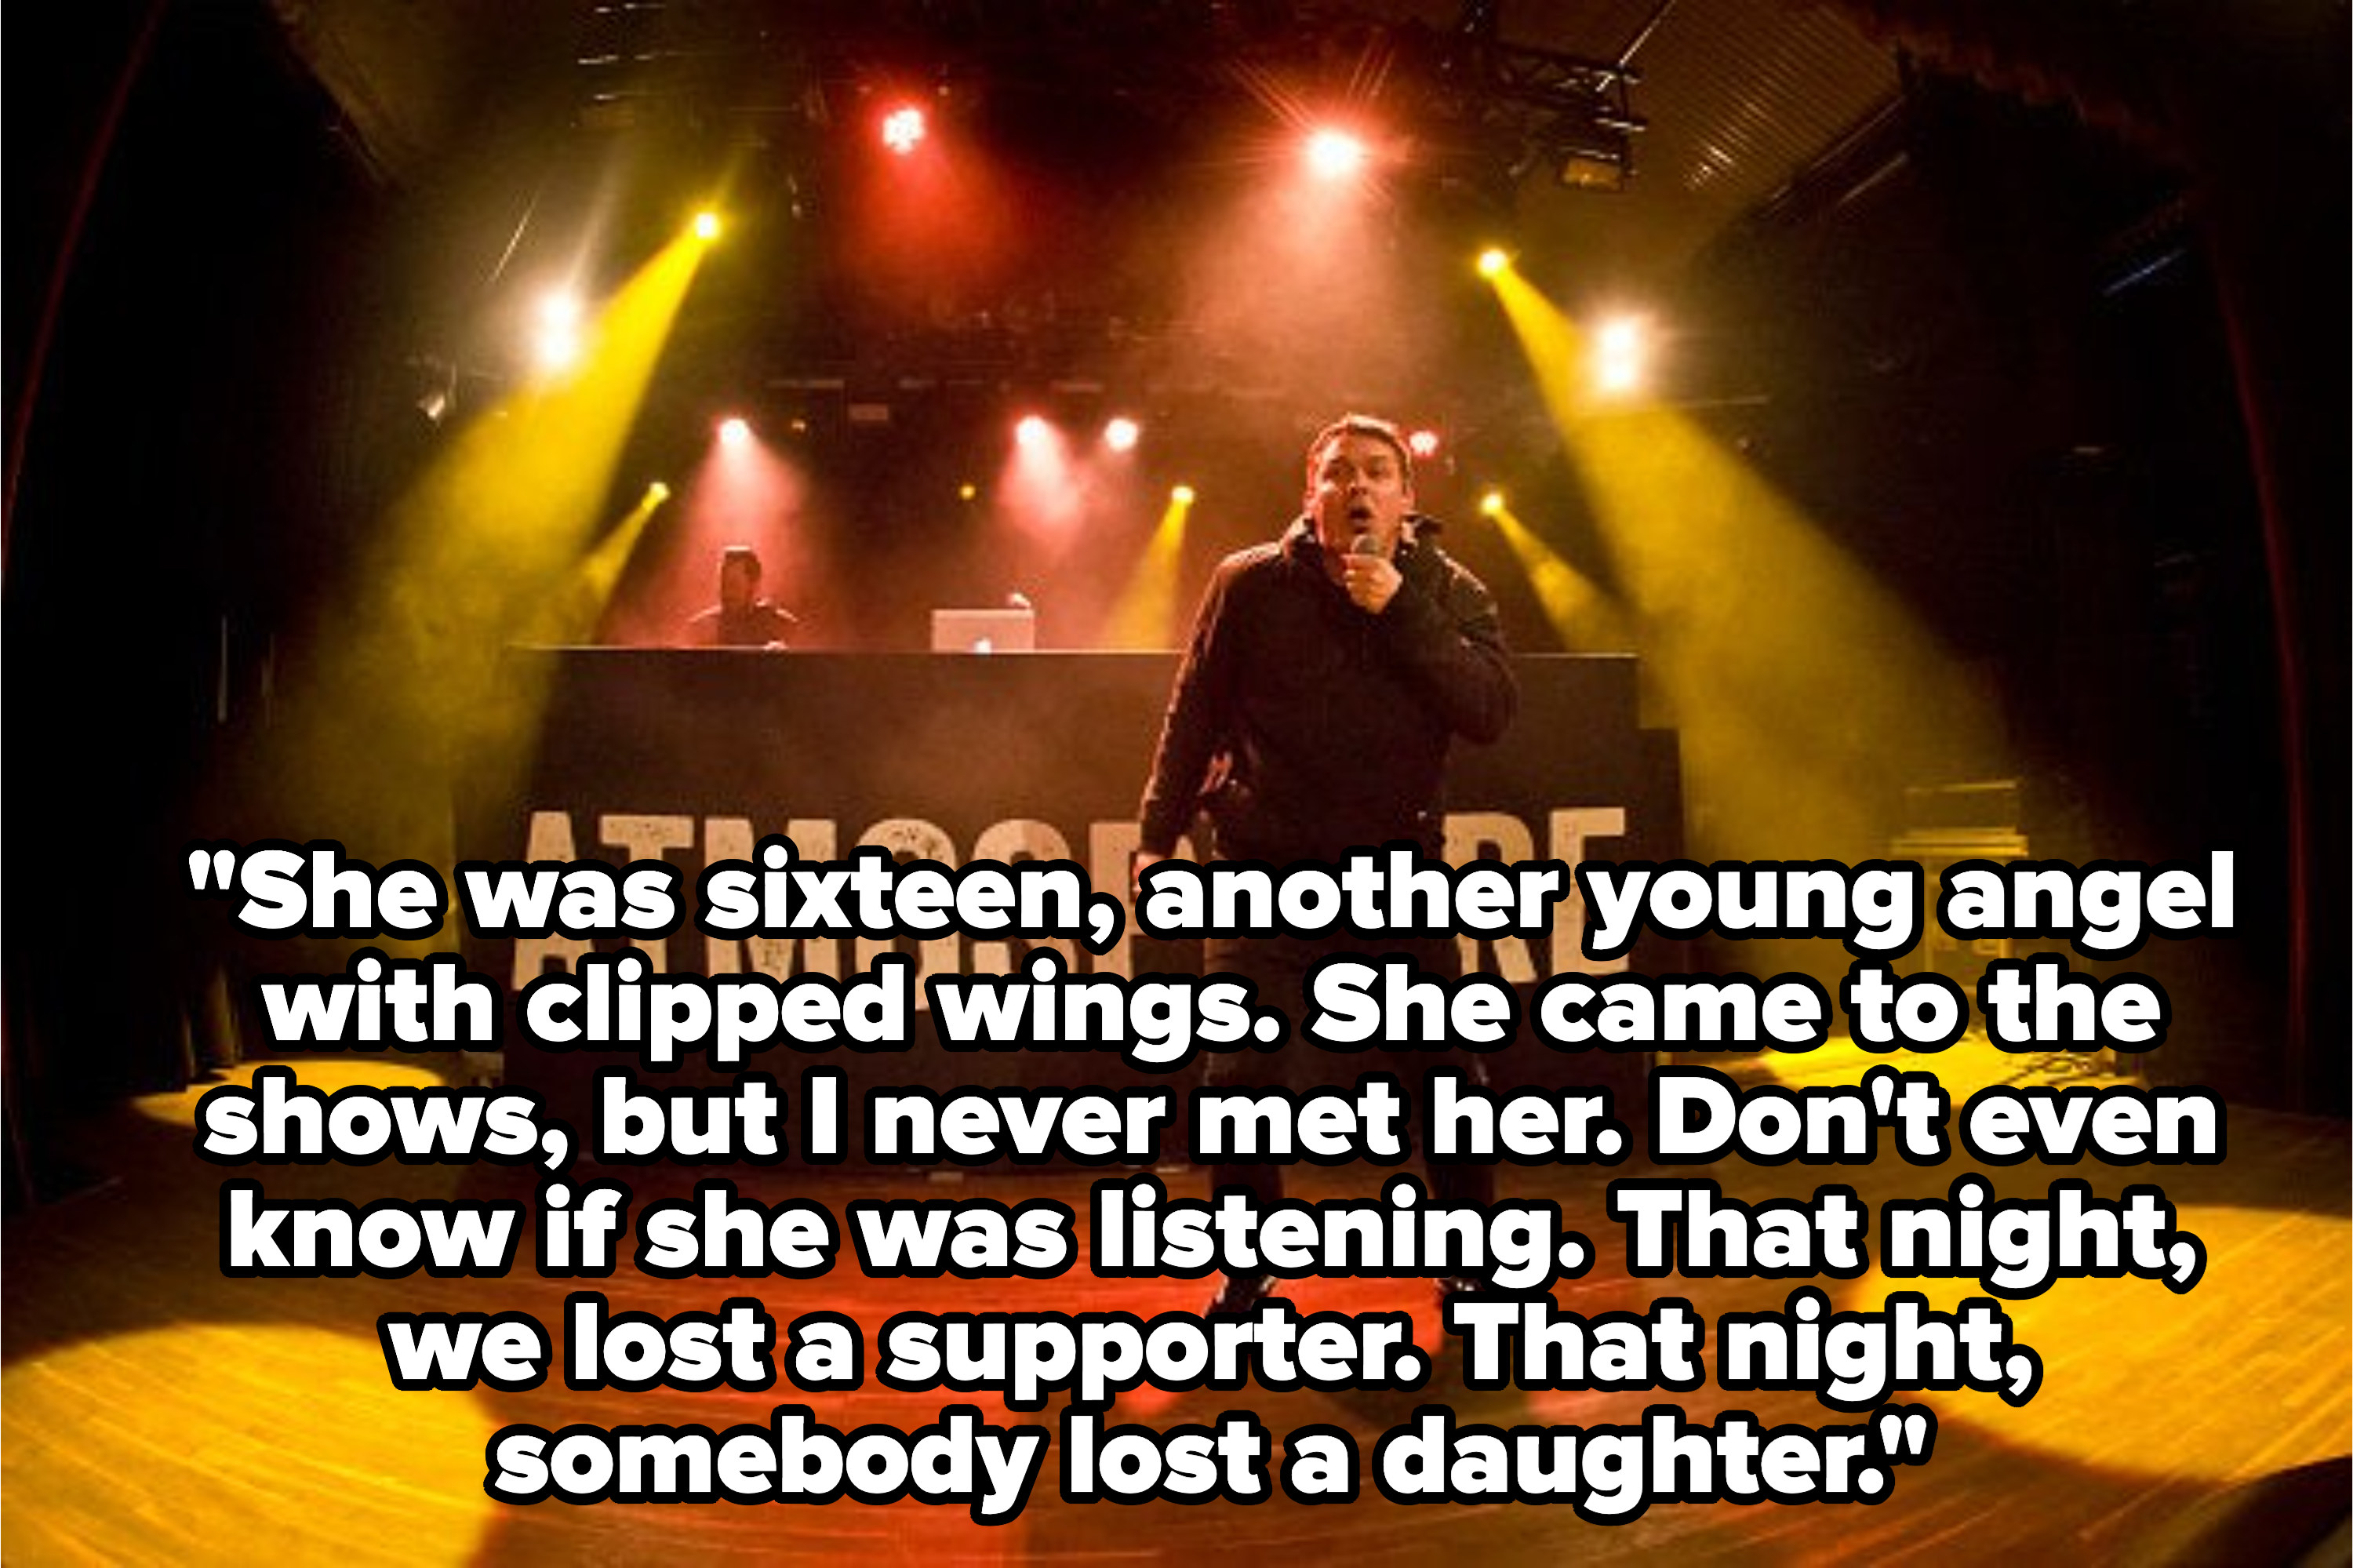 Lyrics: She was sixteen, another young angel with clipped wings. She came to the shows, but I never met her. Don't even know if she was listening. That night, we lost a supporter. That night, somebody lost a daughter.